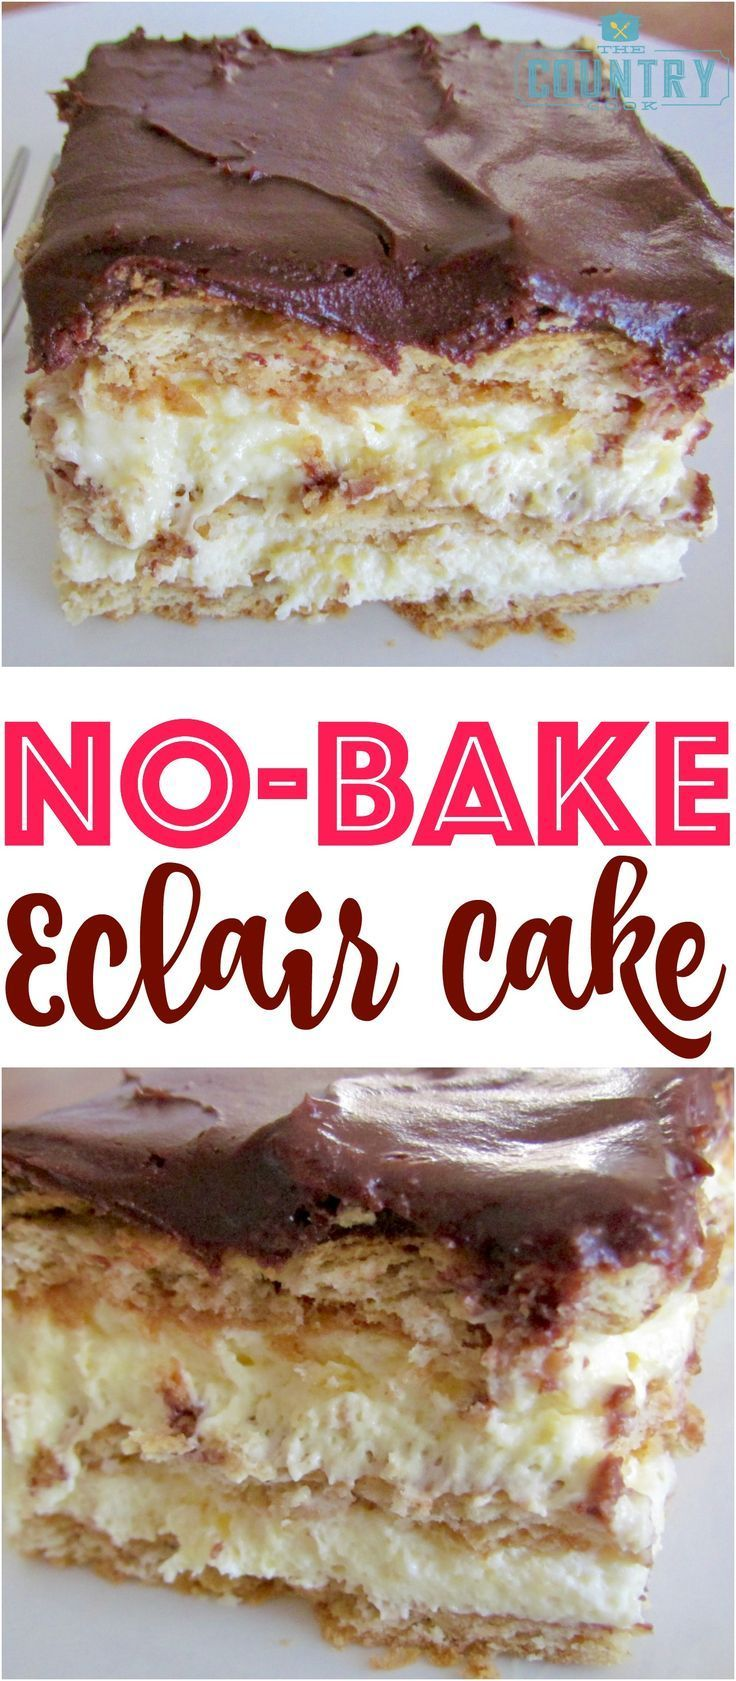 Check out No-Bake Eclair Cake. It's so easy to make! | Eclairs and ...